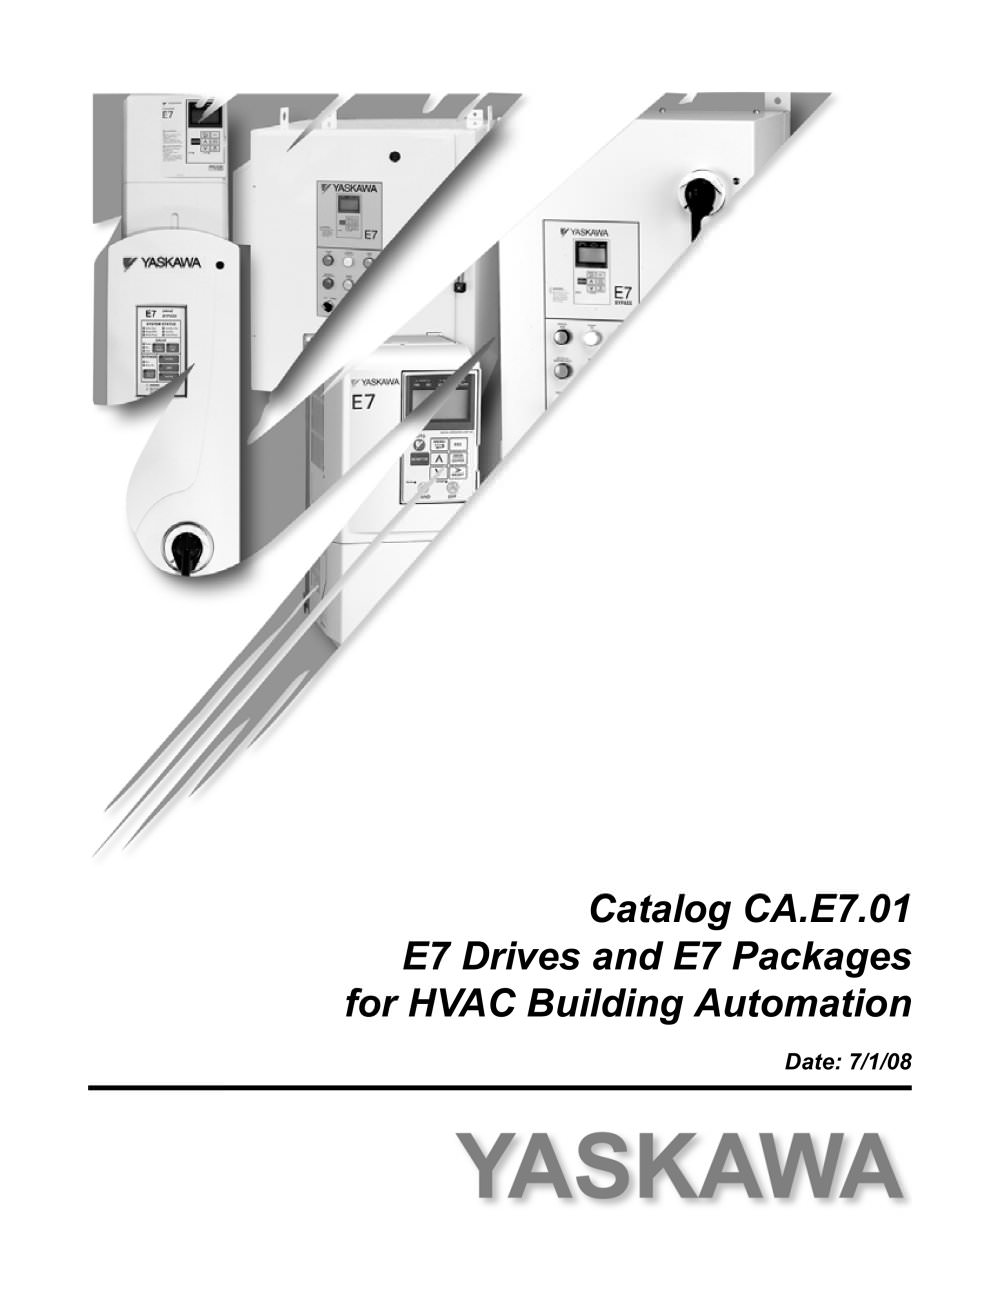 Catalog For E7 Drives And Packages Hvac Building Automation Yaskawa A1000 Wiring Diagram 1 120 Pages